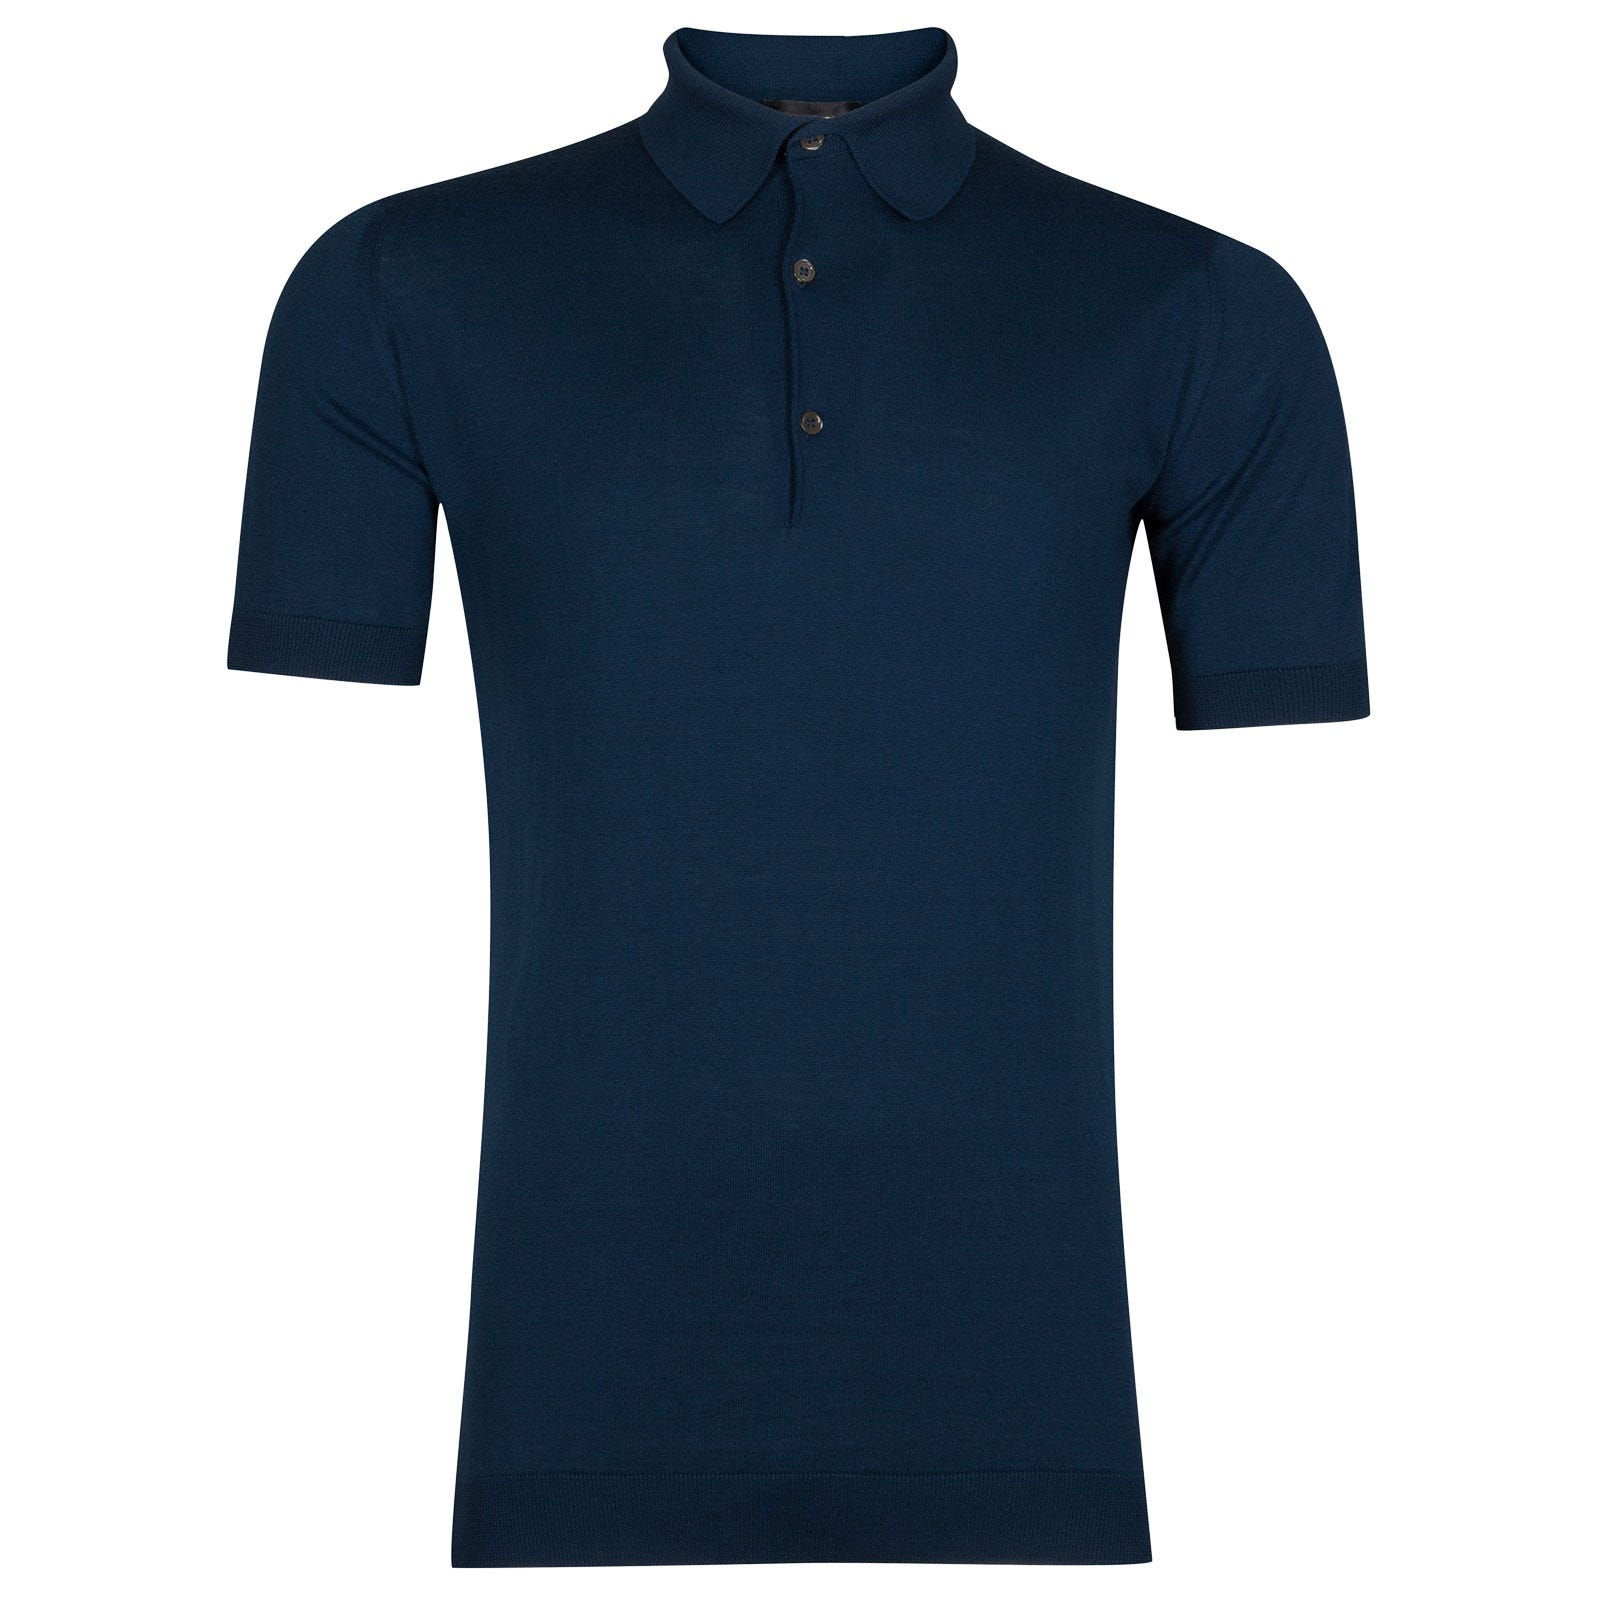 John Smedley adrian Sea Island Cotton Shirt in Indigo-S